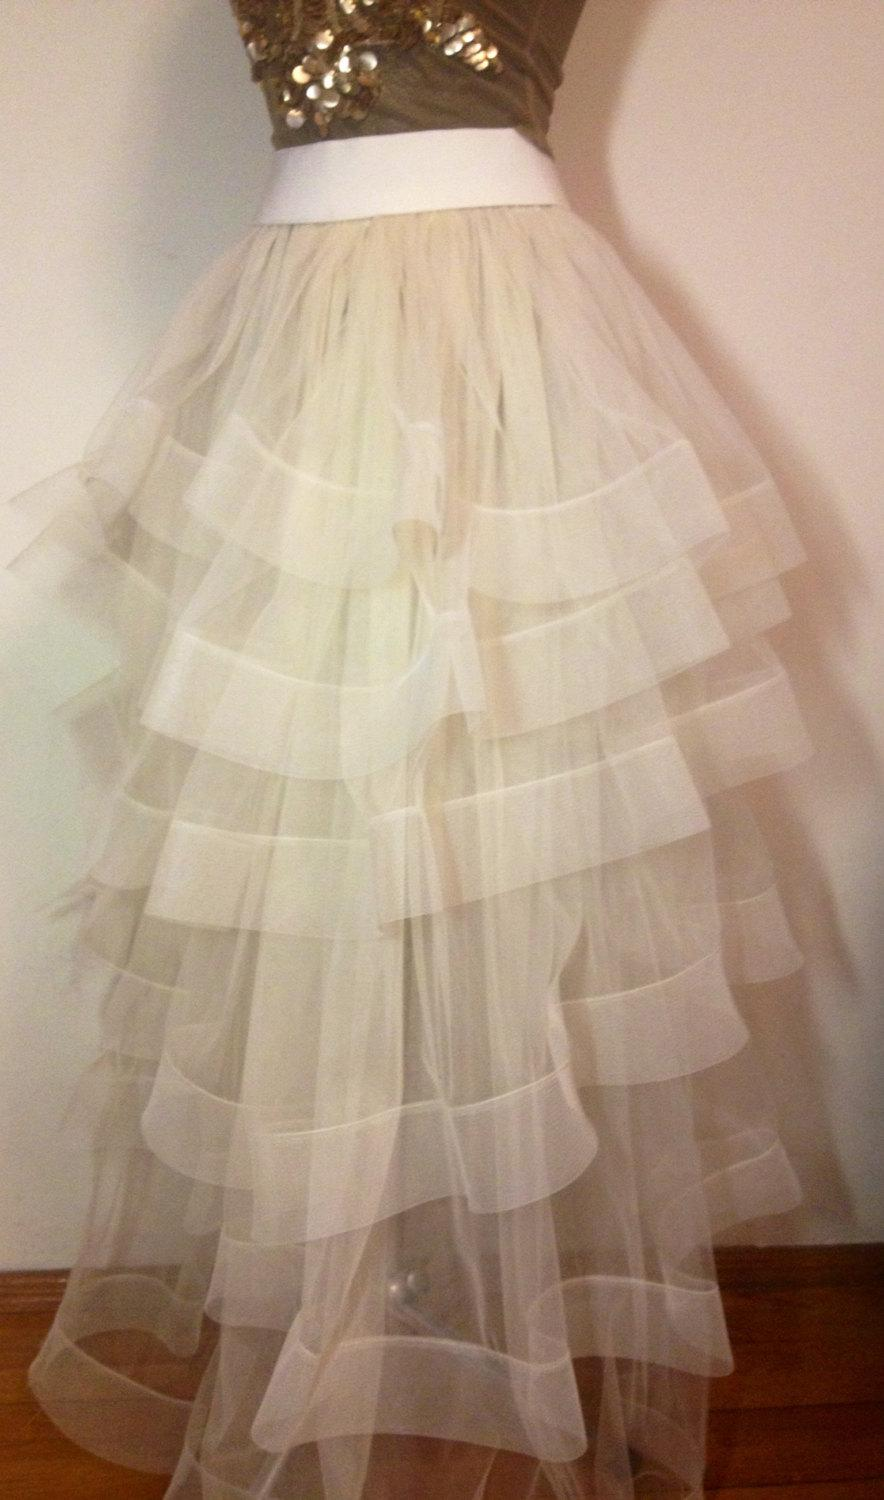 زفاف - Tulle wedding skirt, tulle overskirt, wedding skirt,  detachable wedding skirt, detachable tulle skirt, wedding dress.